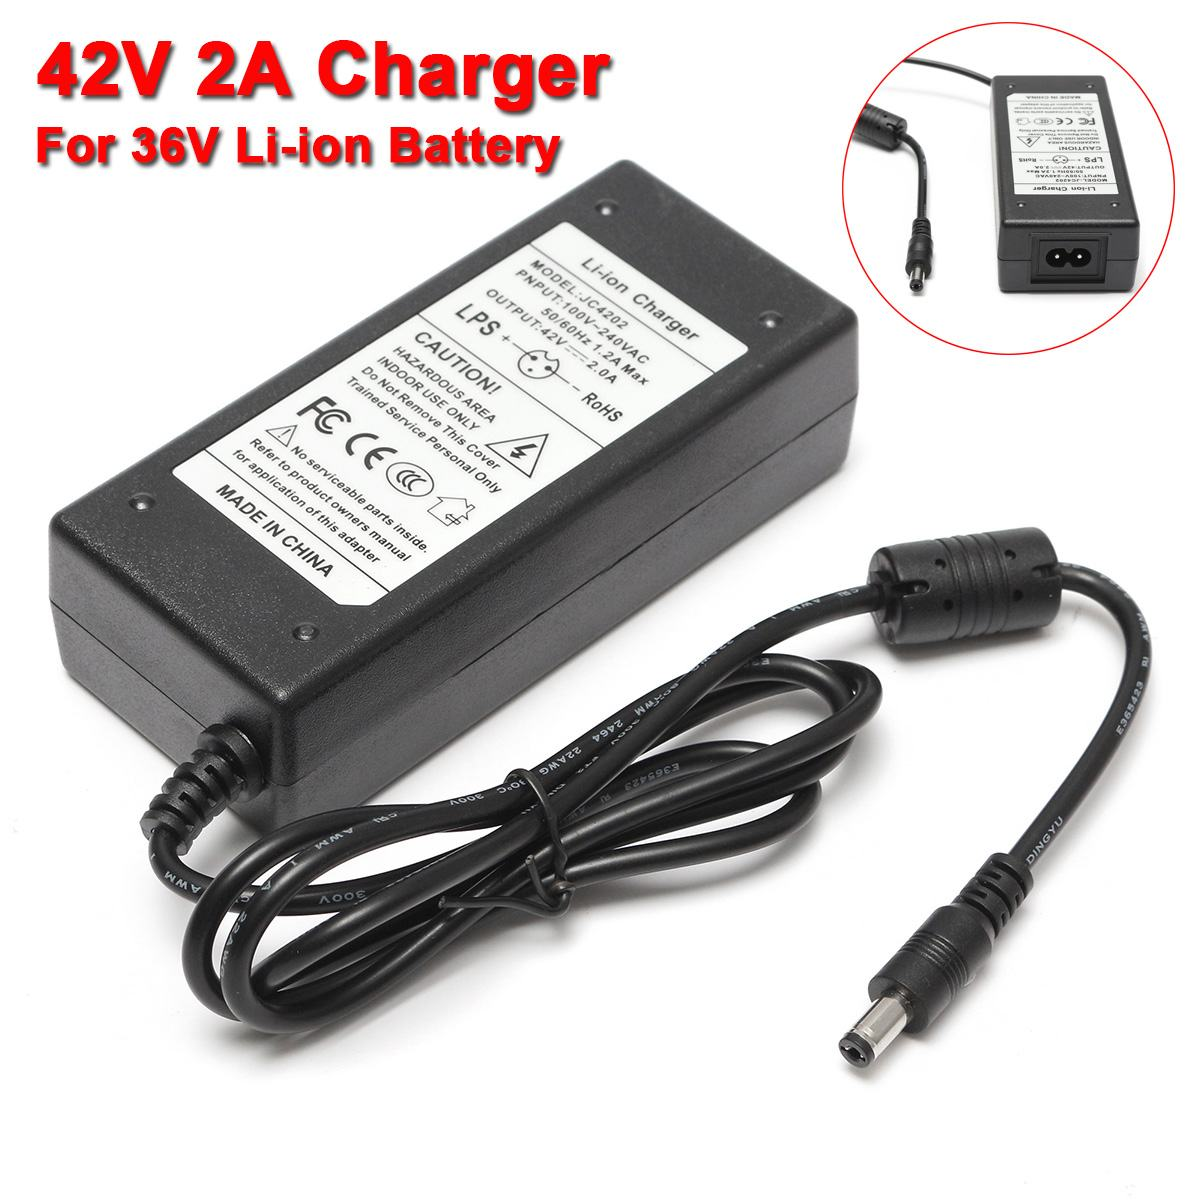 42V 2A <font><b>Charger</b></font> For <font><b>36V</b></font> Li-ion Lithium <font><b>Battery</b></font> Two-Wheel Self-Balanced Vehicle ! image